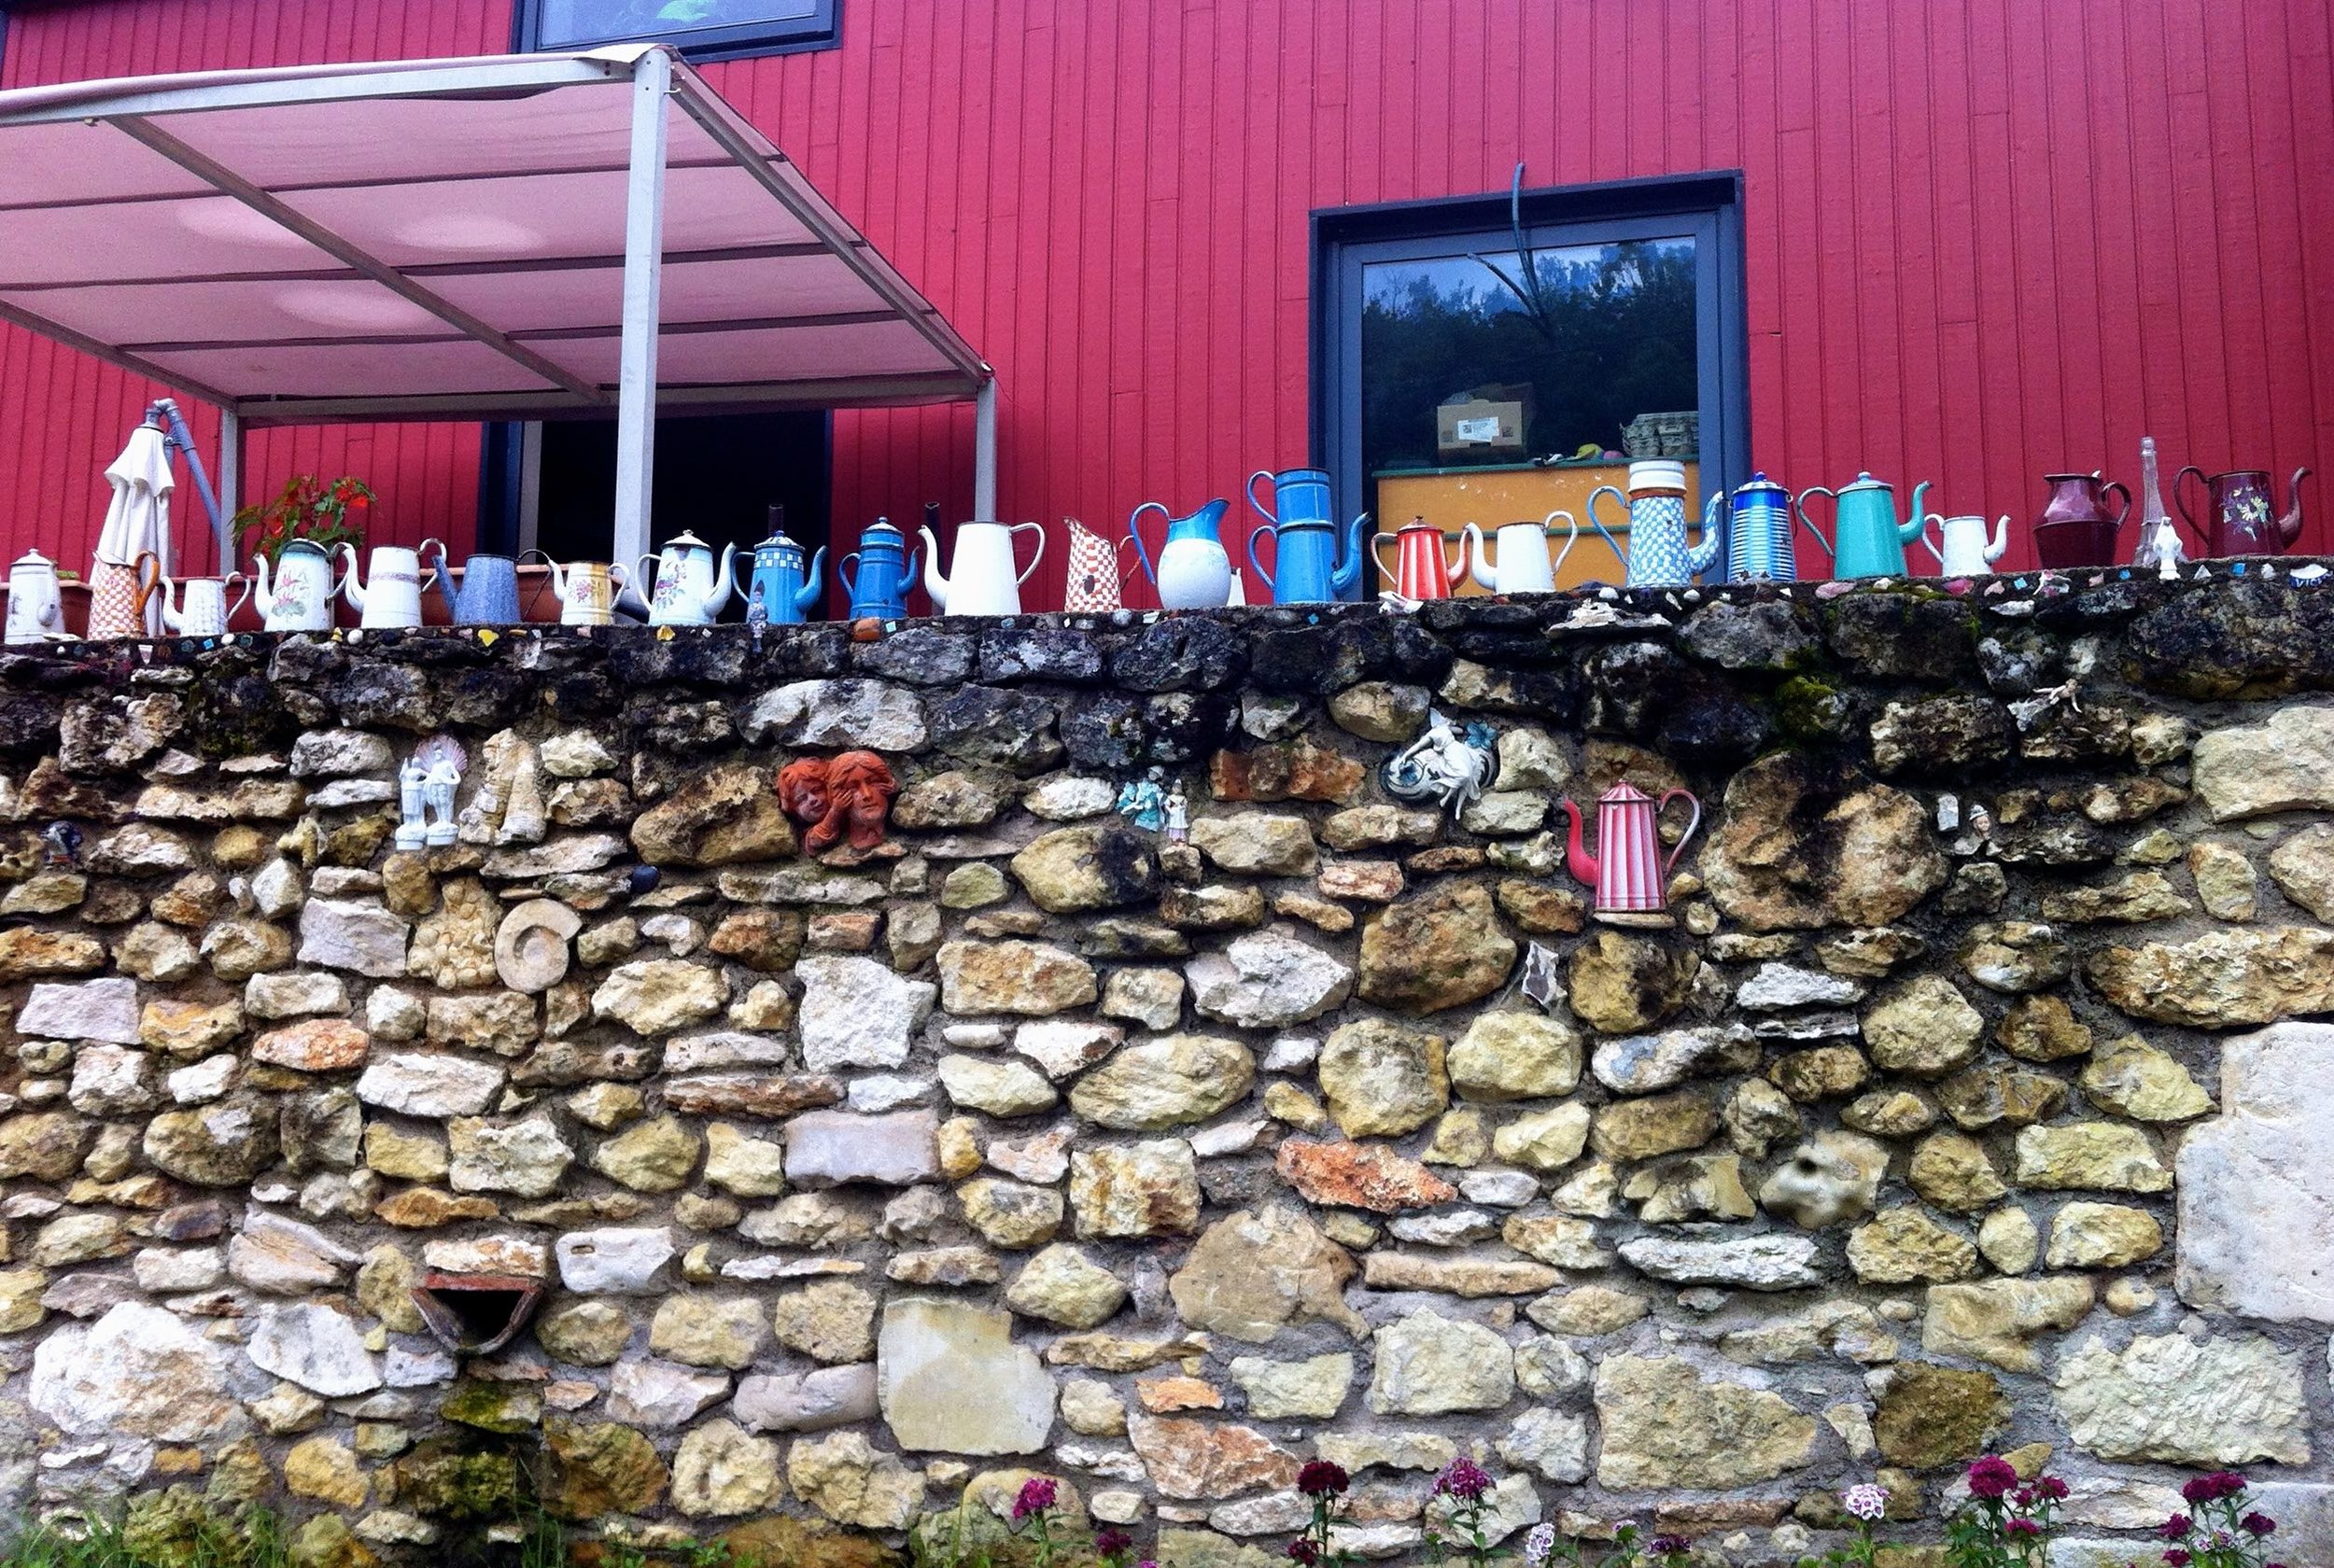 It was only when I was close up that I recognised the colourful additions as coffee pots, each and every one of them